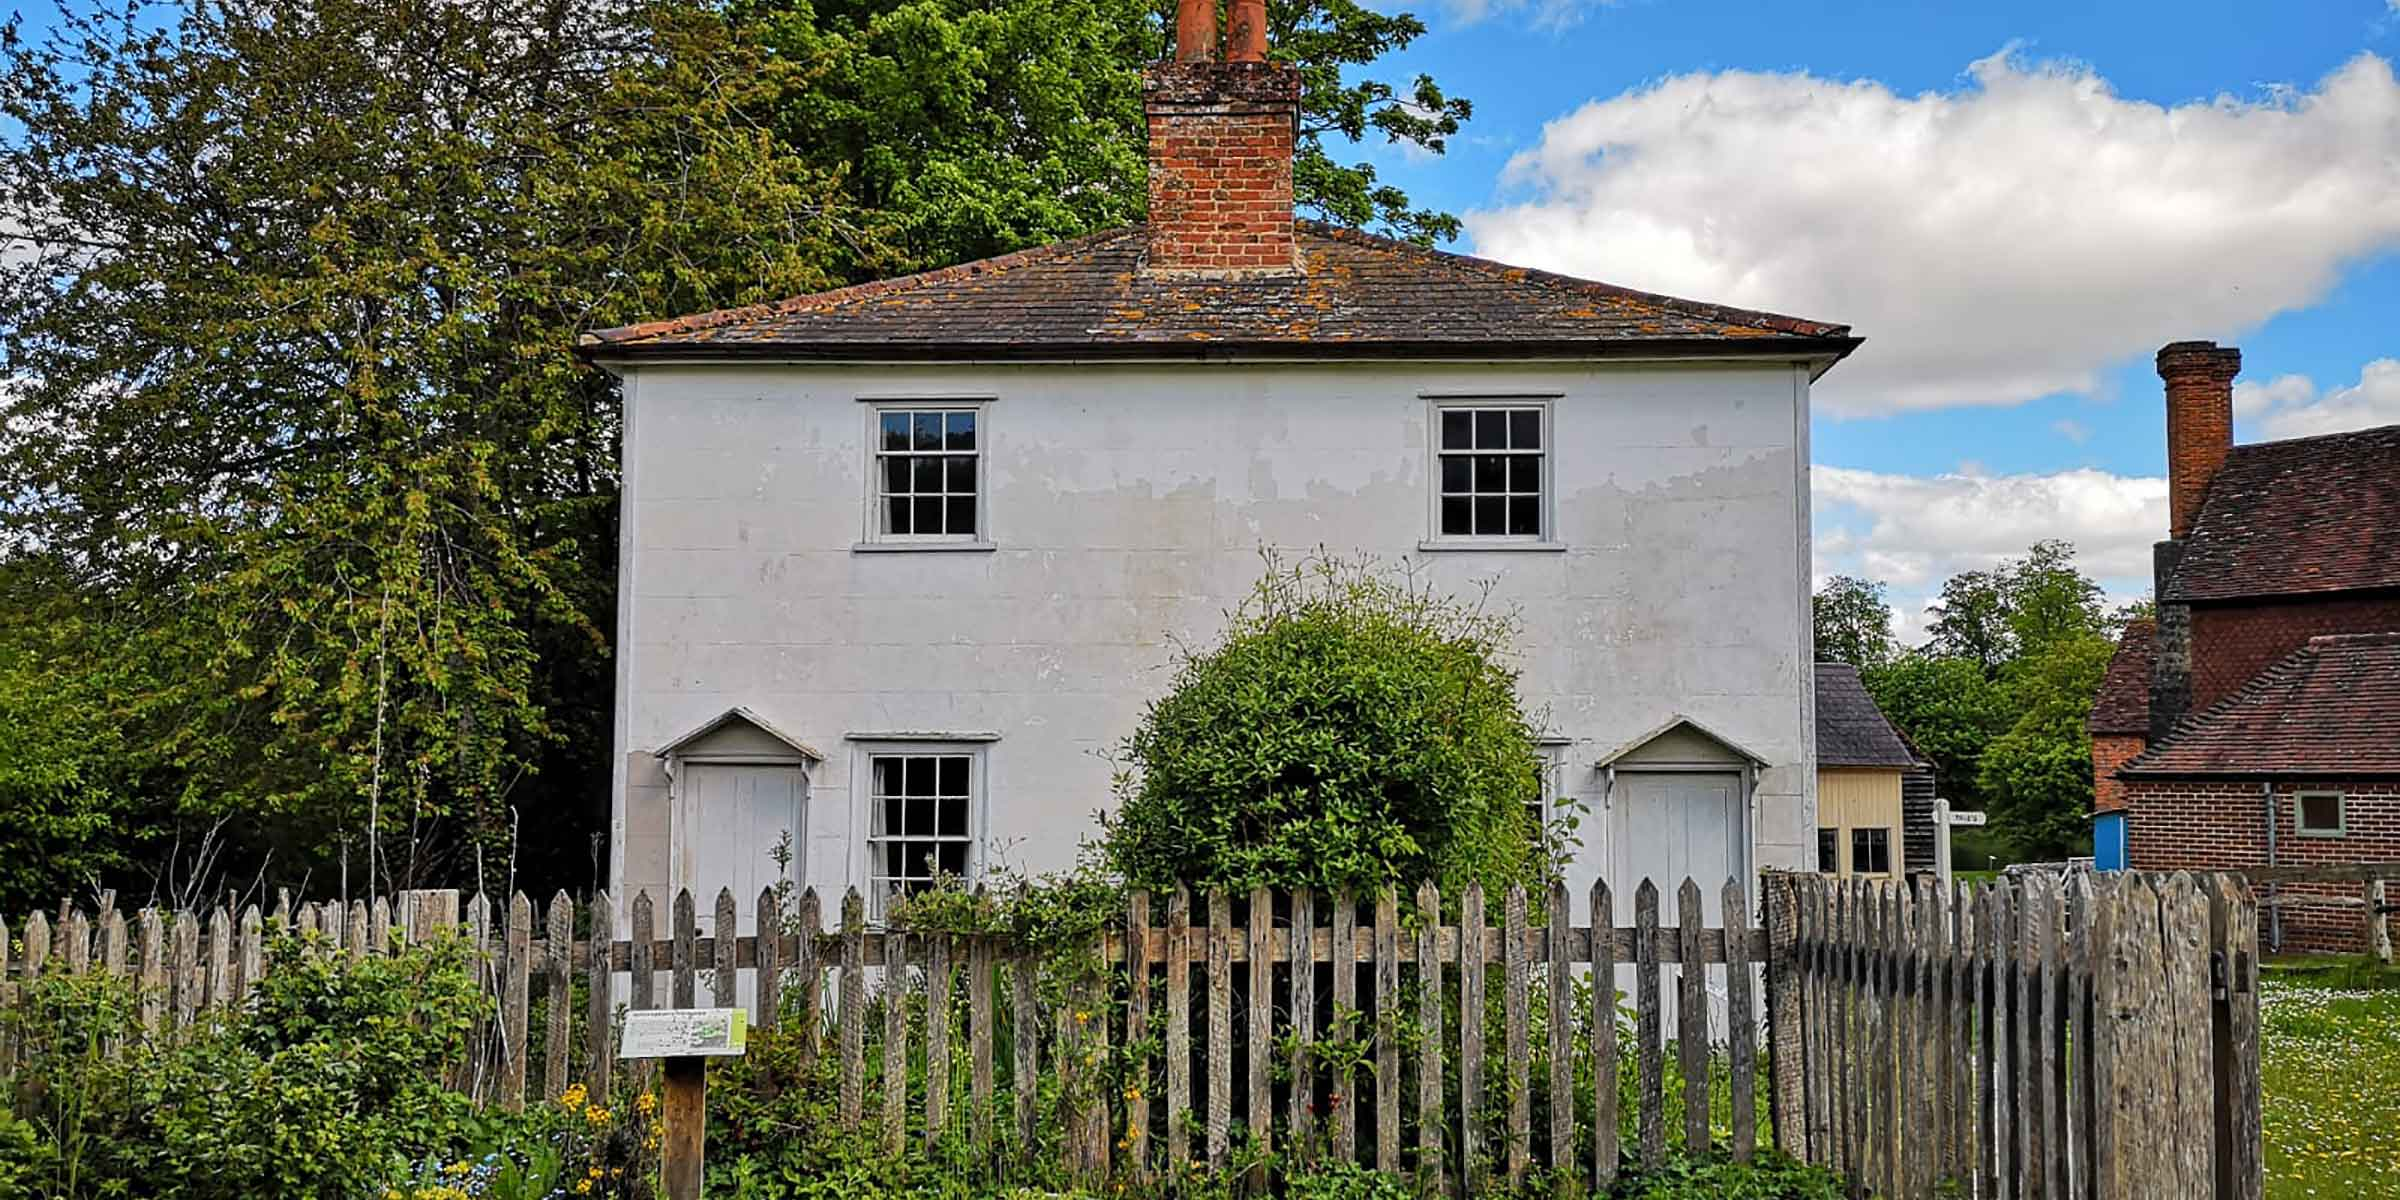 Whittakers Cottages from Ashtead, Surrey